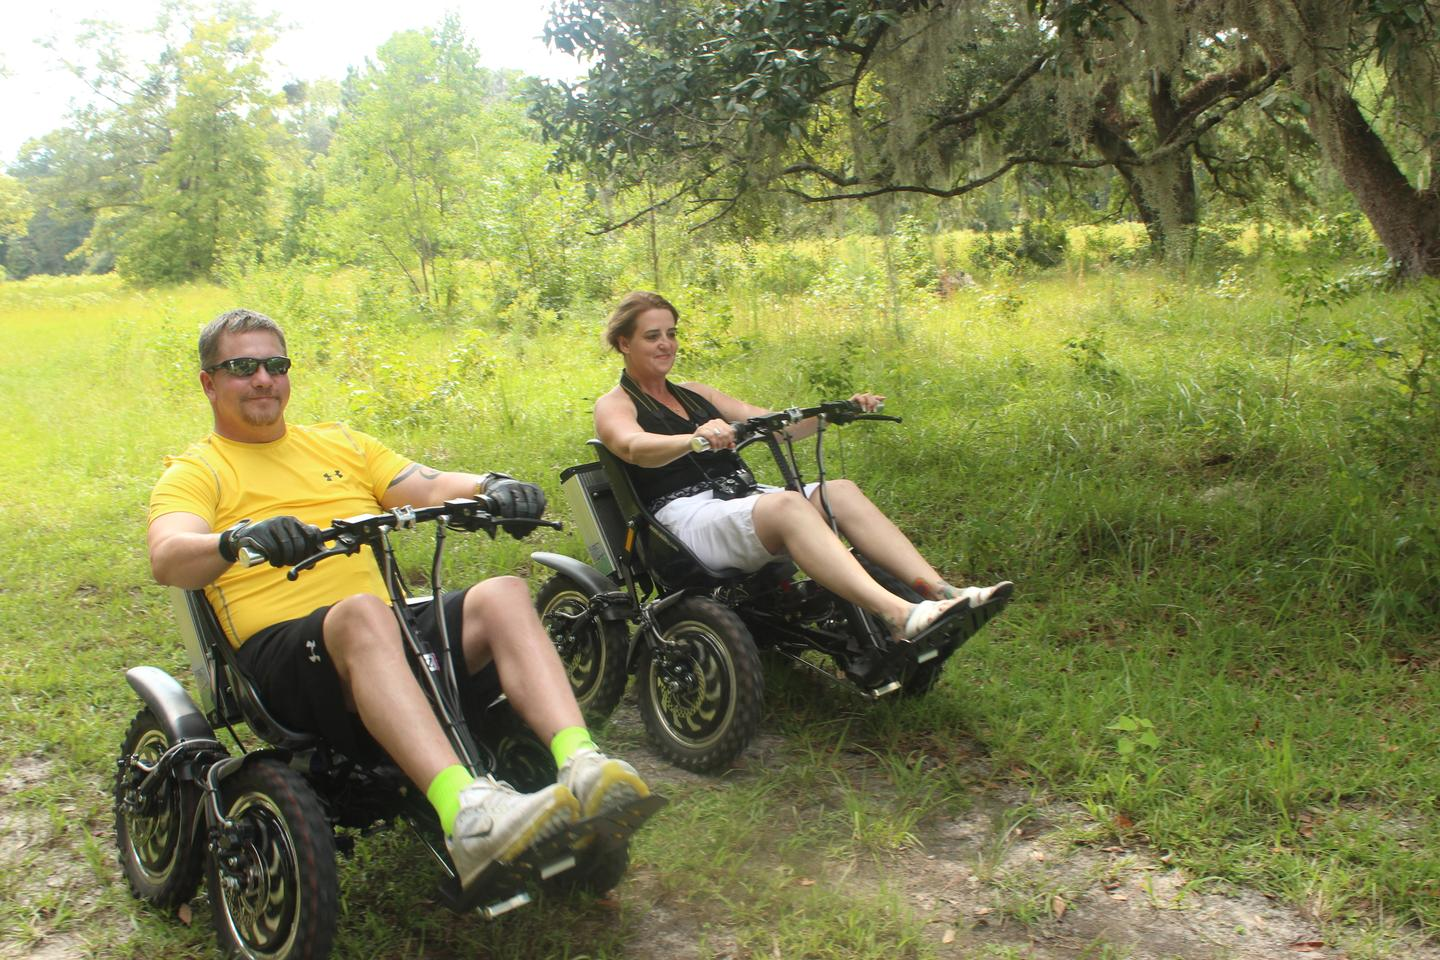 The Zoom allows people with limited mobility to venture off the pavement